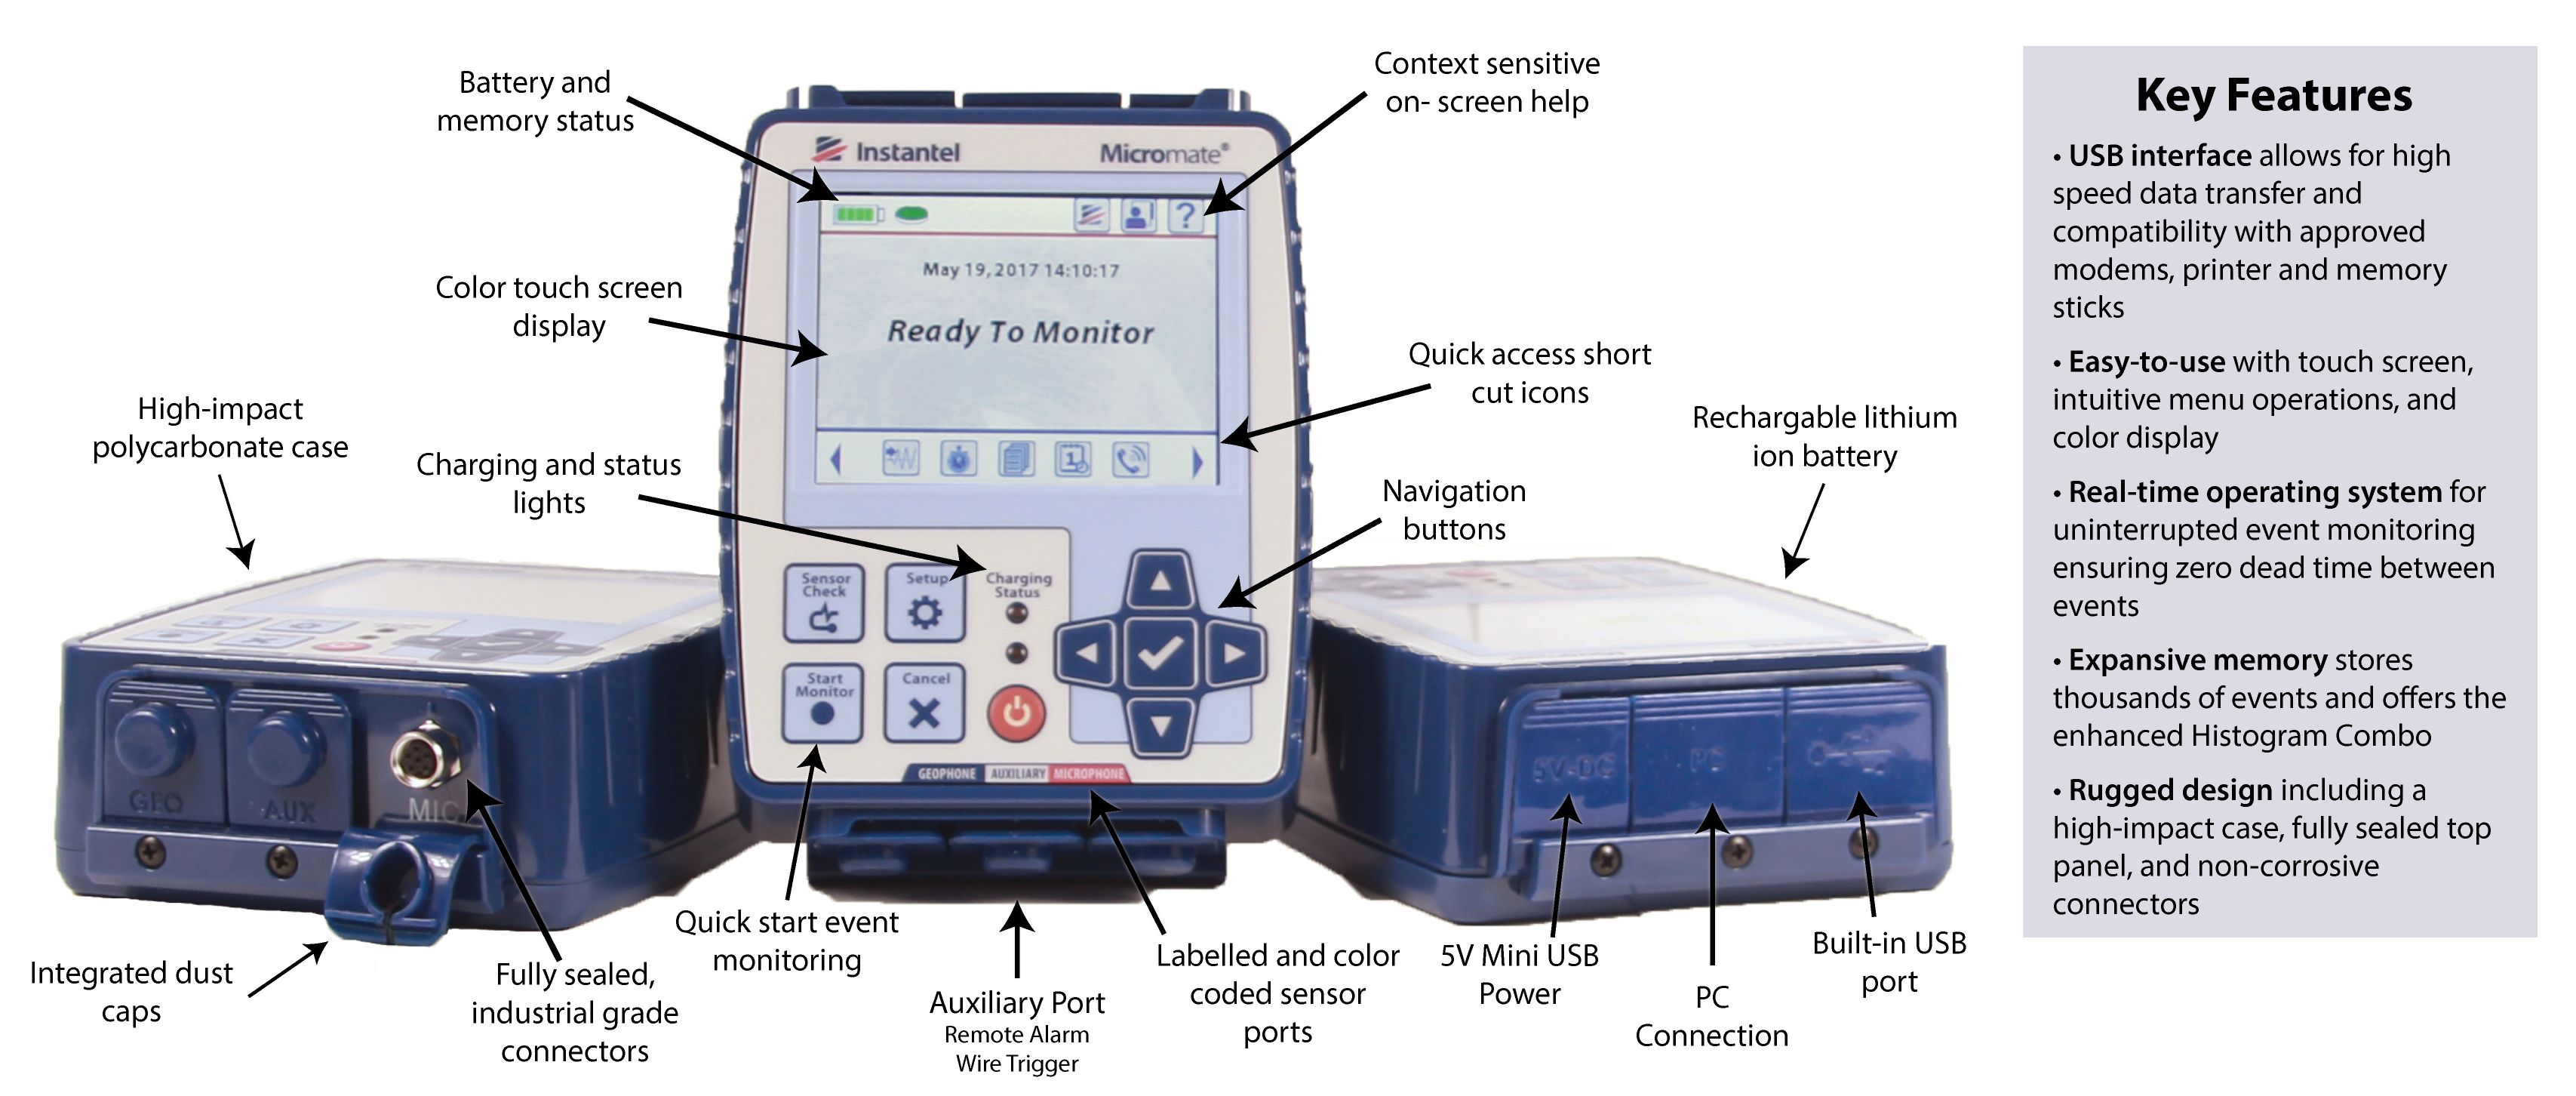 Picture showing Micromates key features